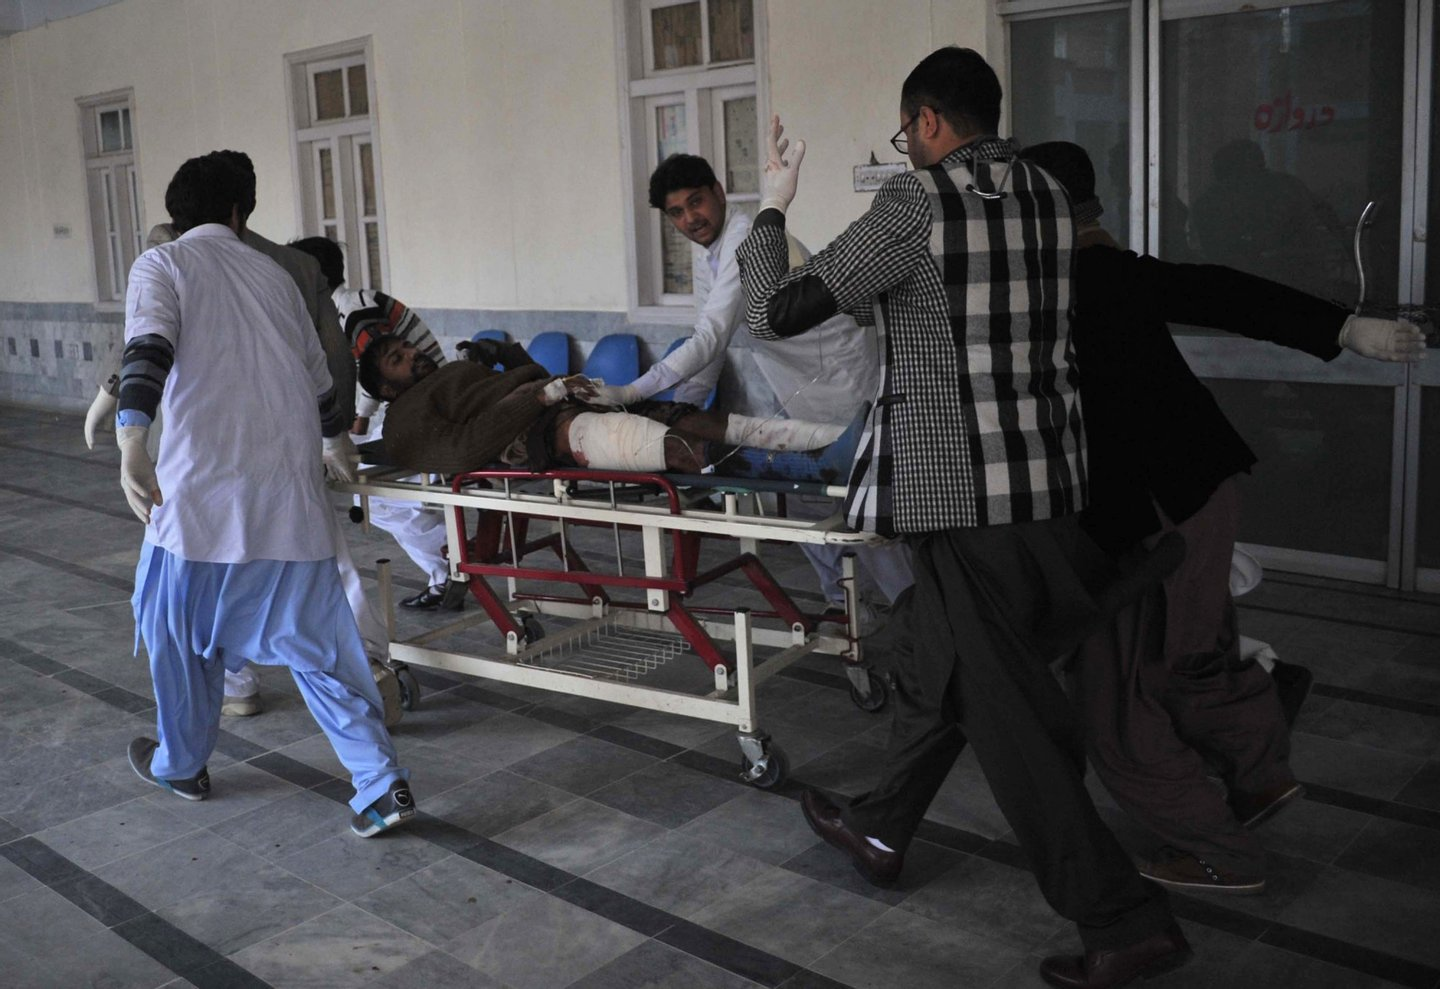 Pakistani rescuers shift an injured man at a hospital following an attack by gunmen at Bacha Khan university in Charsadda, about 50 kilometres from Peshawar, on January 20, 2016. At least 21 people died in an armed assault on a university in Pakistan on January 20, where witnesses reported two large explosions as security forces moved in under dense fog to halt the bloodshed. AFP PHOTO /Hasham AHMED / AFP / HASHAM AHMED (Photo credit should read HASHAM AHMED/AFP/Getty Images)